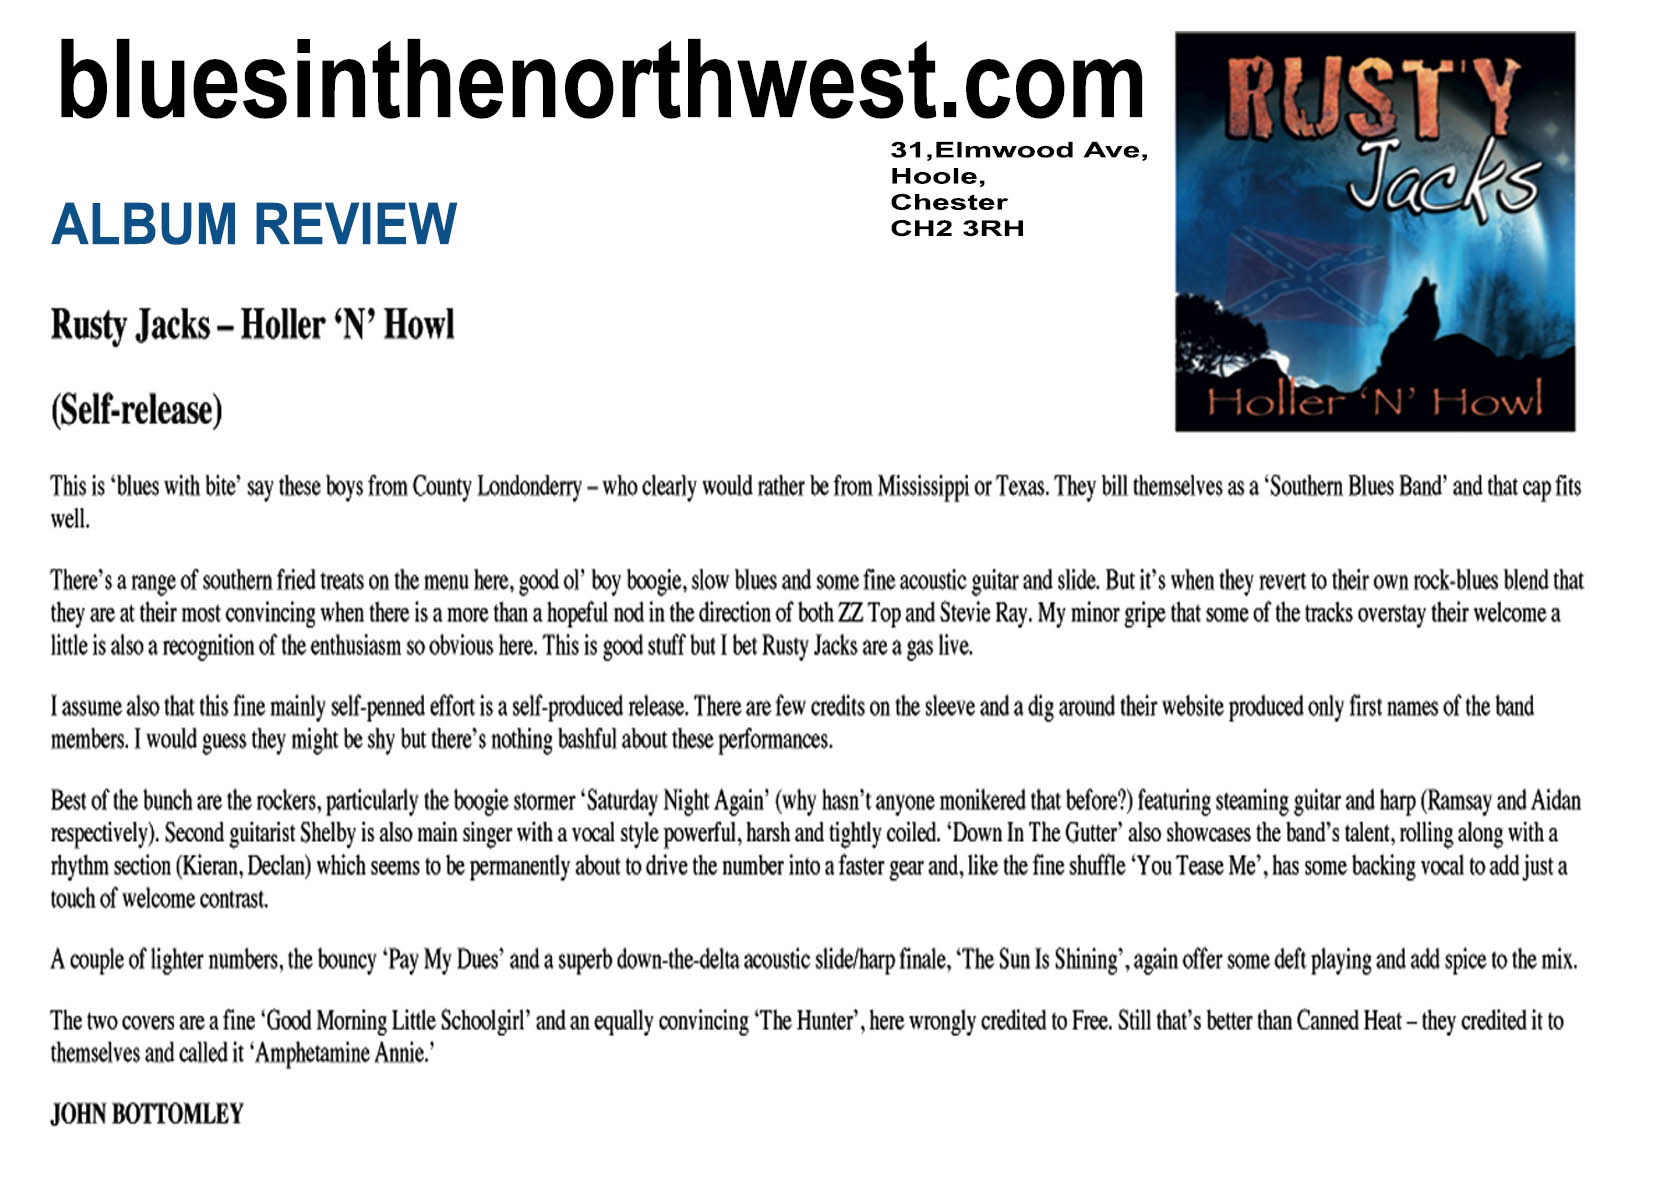 BLUES IN THE NORTHWEST -ALBUM REVIEW